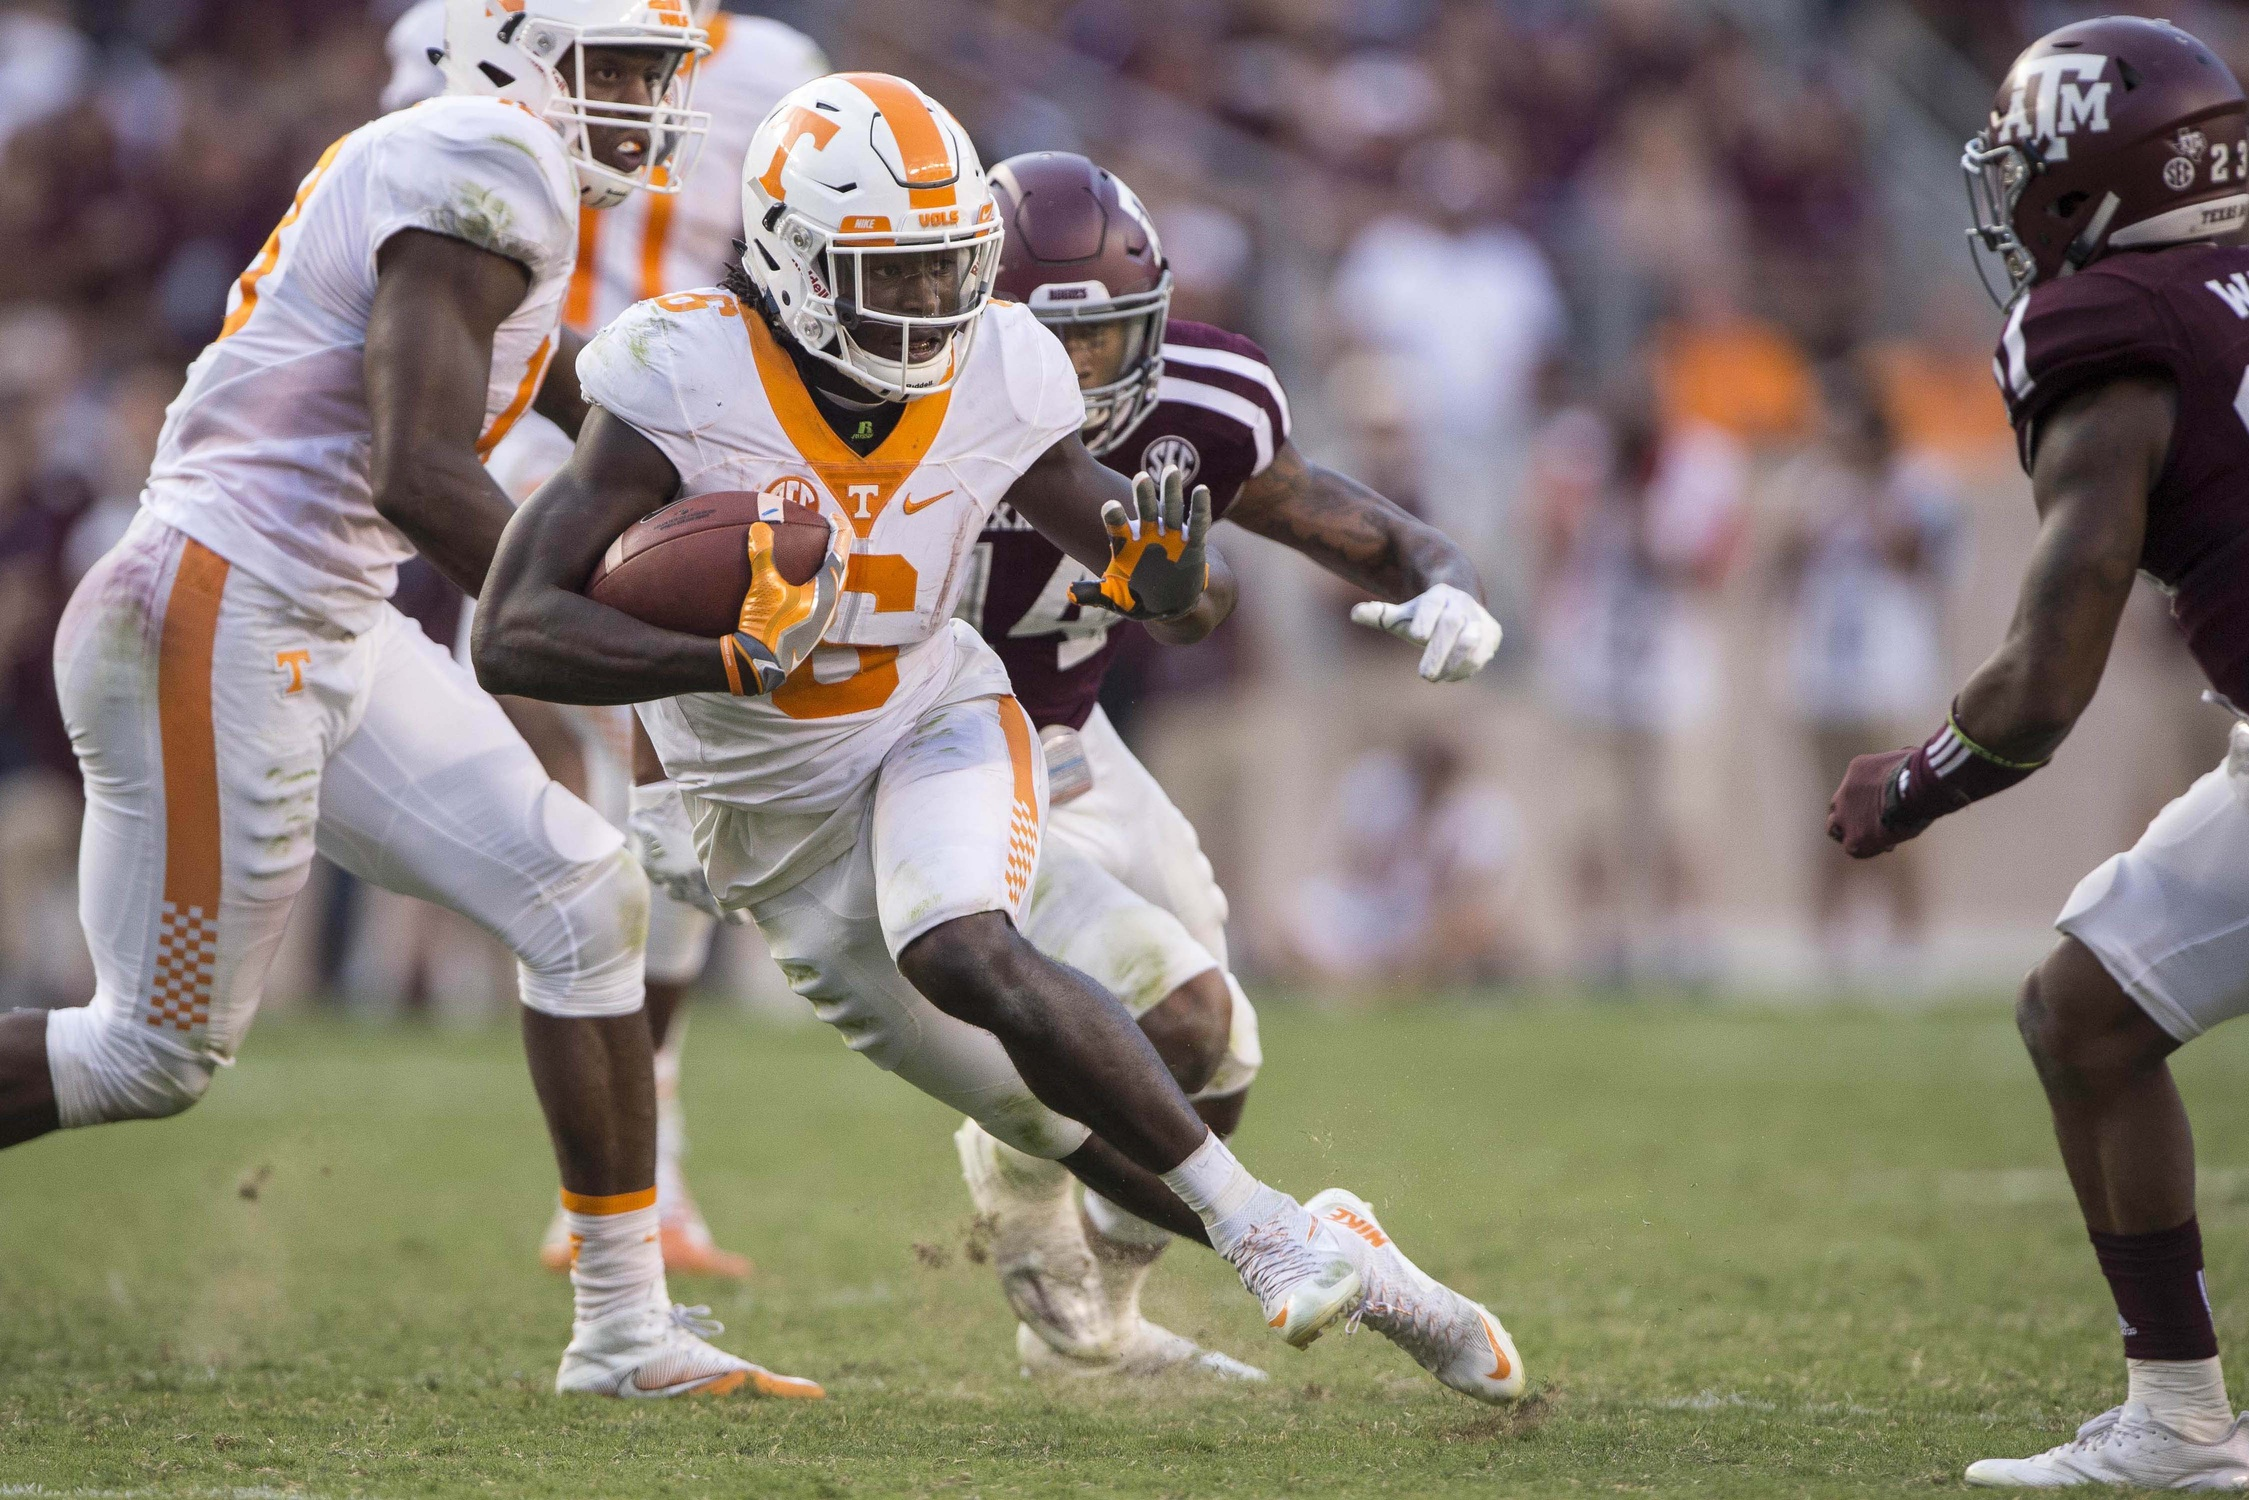 Oct 8, 2016; College Station, TX, USA; Tennessee Volunteers running back Alvin Kamara (6) runs for a first down against the Texas A&M Aggies during the second half at Kyle Field. The Aggies defeat the Volunteers 45-38 in overtime. Mandatory Credit: Jerome Miron-USA TODAY Sports